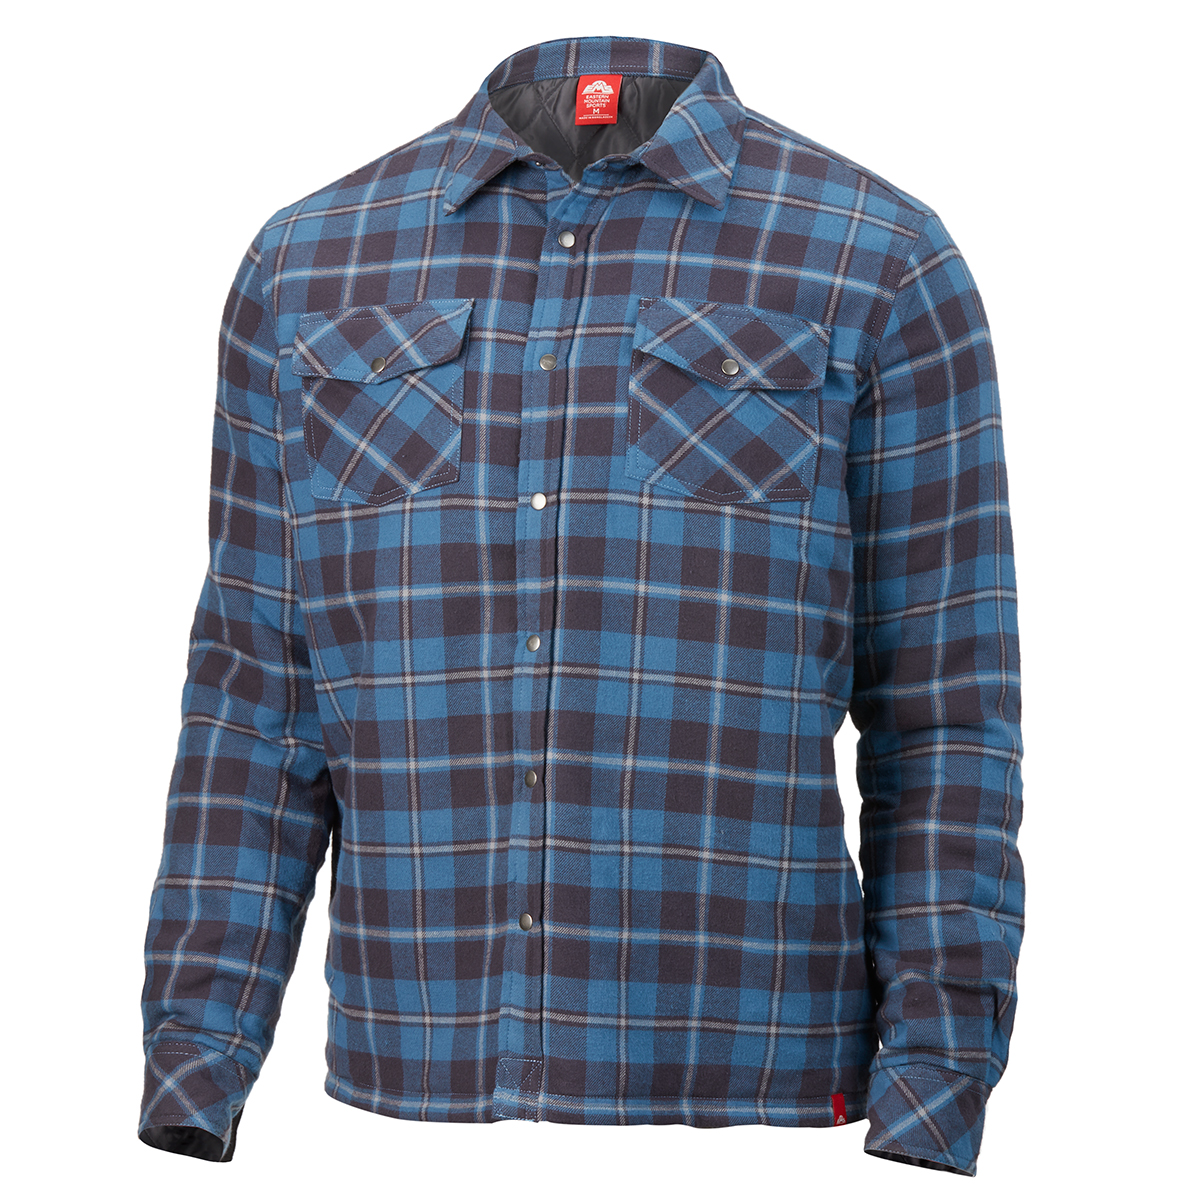 Ems Men's Timber Lined Flannel Shirt - Blue, S